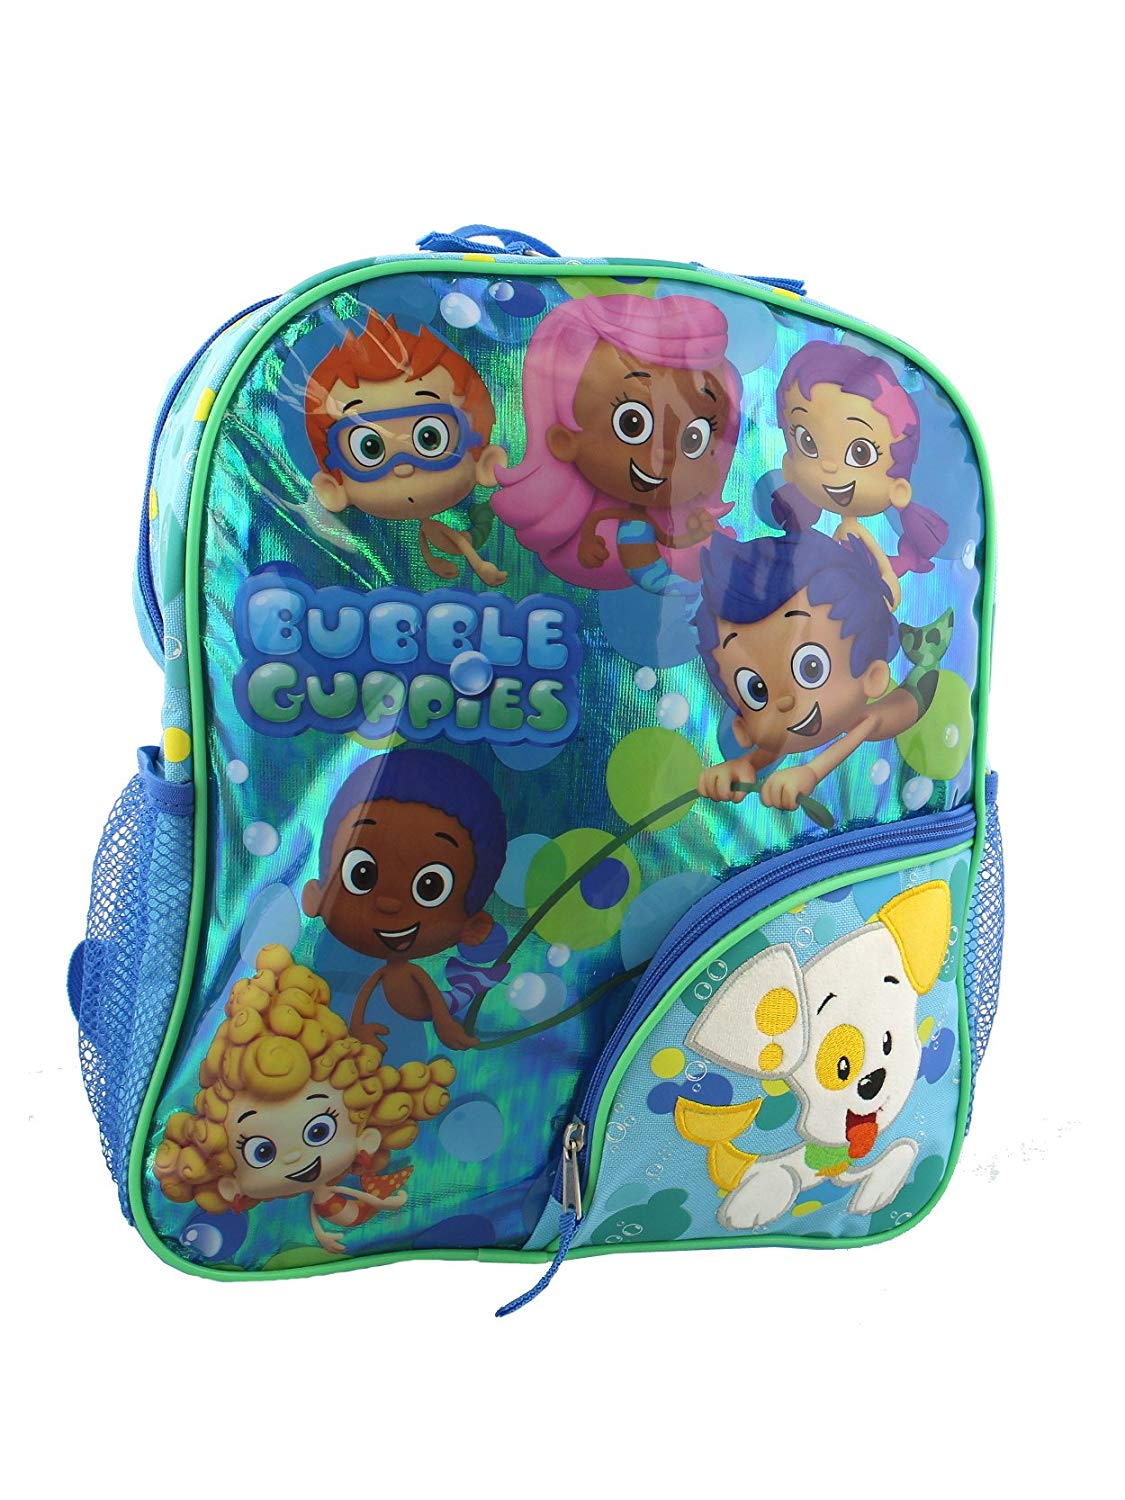 Buy Bubble Guppies Beach Set Backpack in Cheap Price on Alibaba.com c901ce8f09bbd